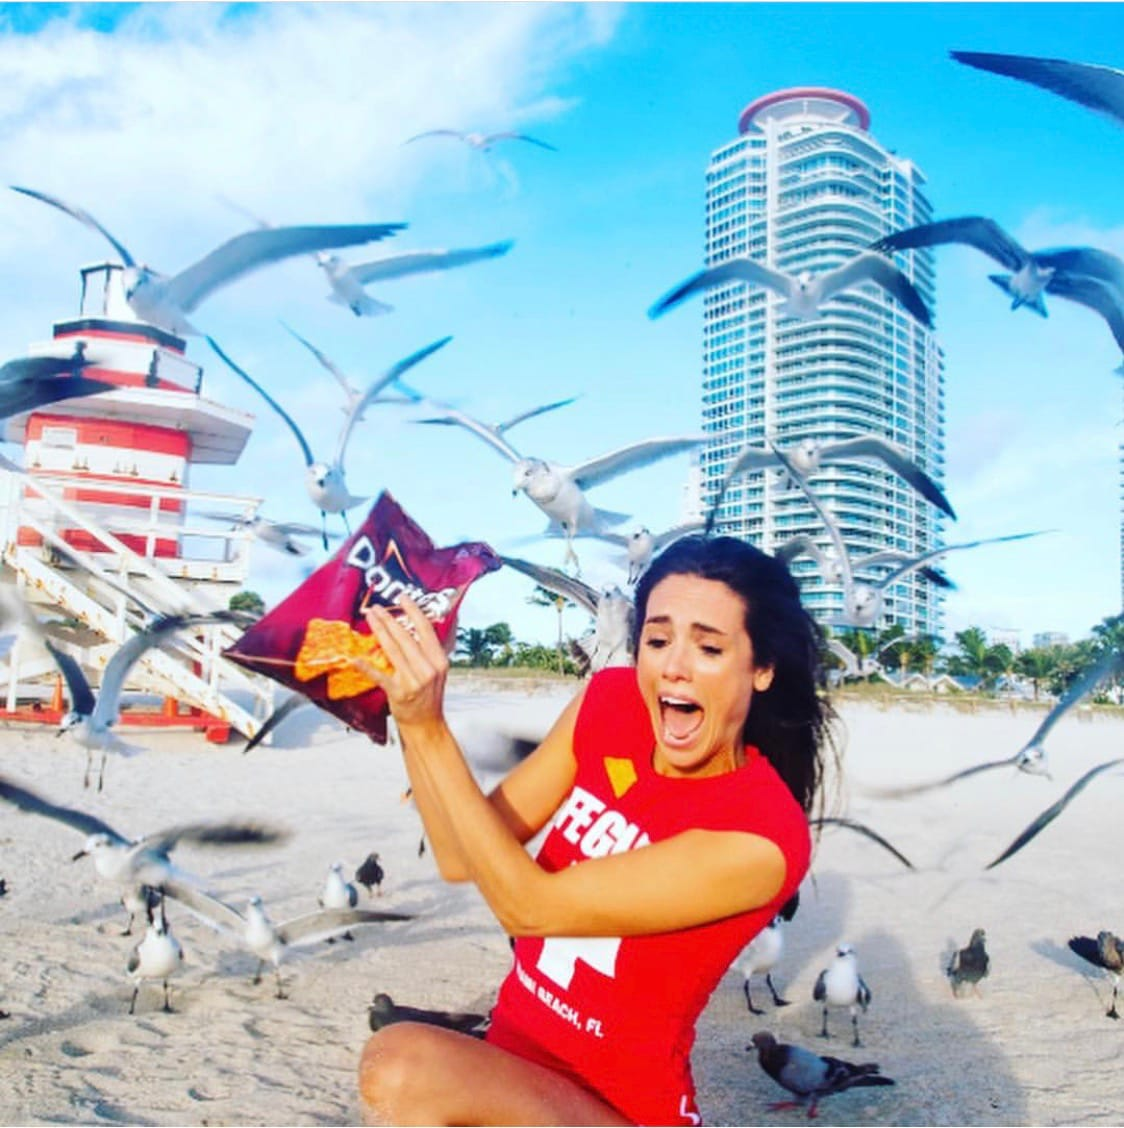 Liz Plank Engagement Shoot with a Bag of Doritos - seagulls attacking